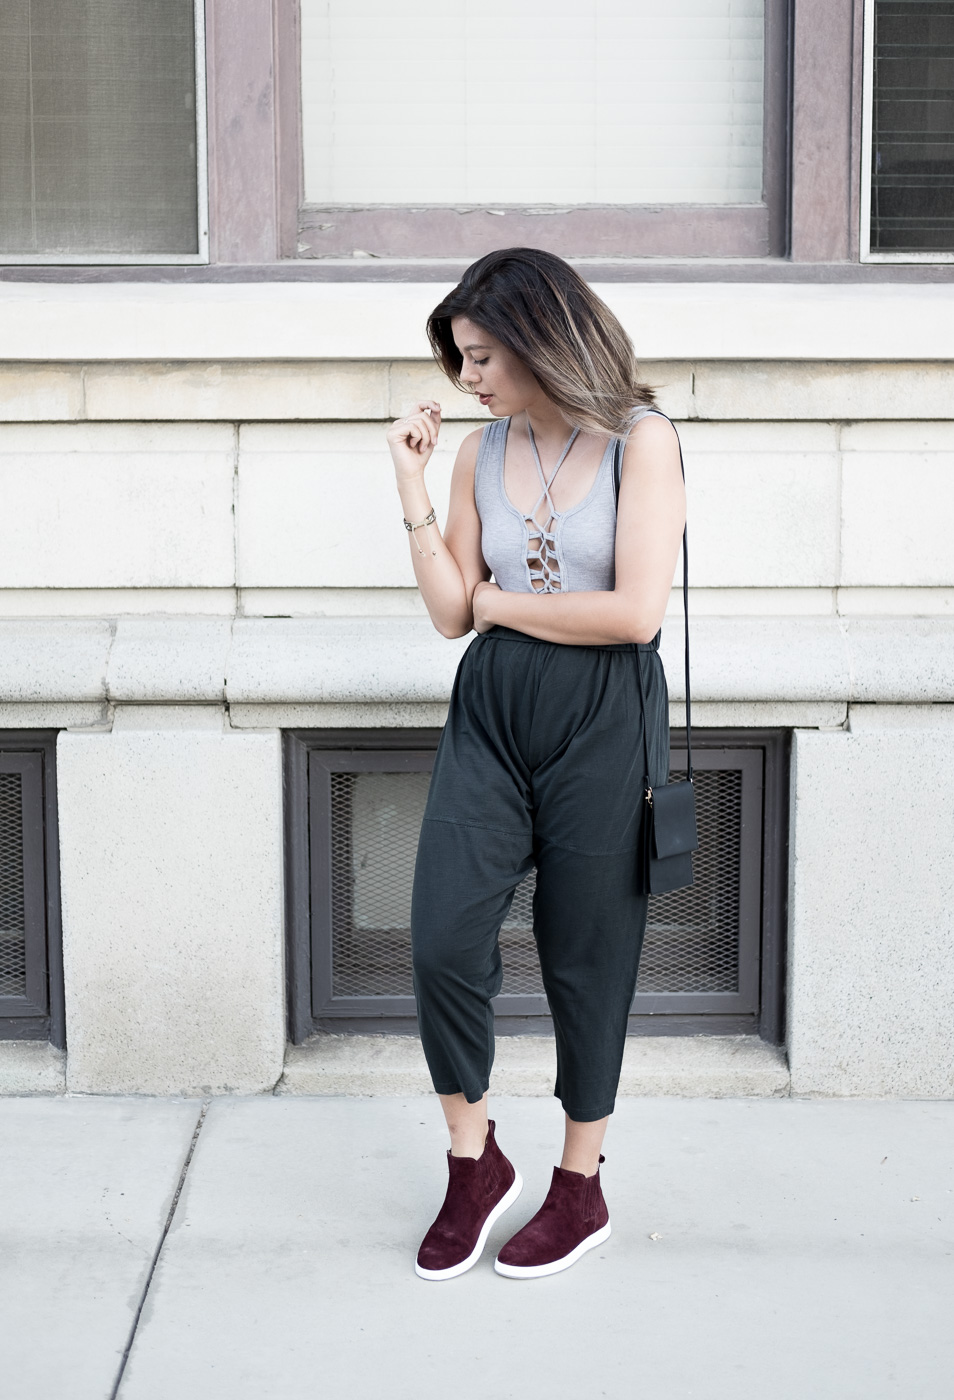 Rachel Off Duty: Why Comfort and Style are Not Mutually Exclusive